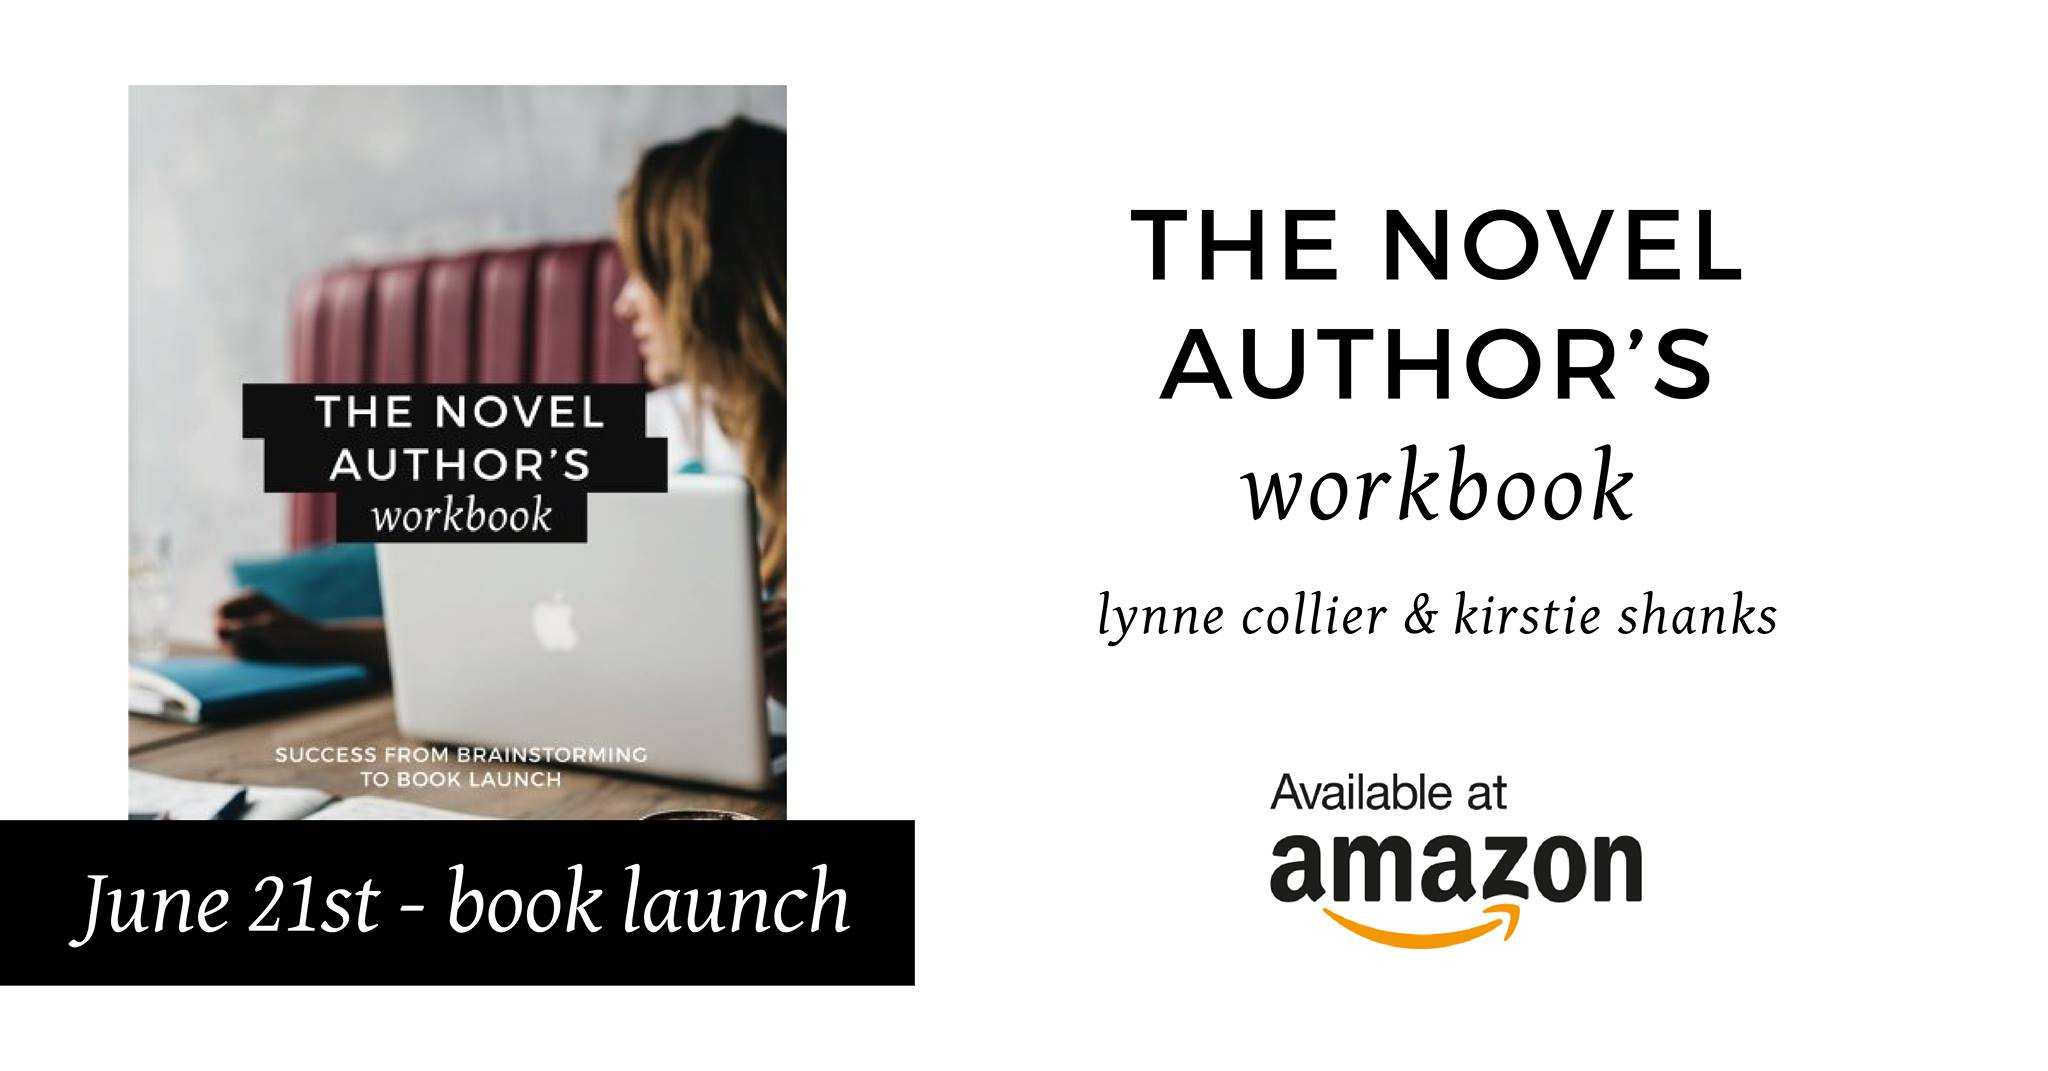 the-novel-author's-workbook-launch